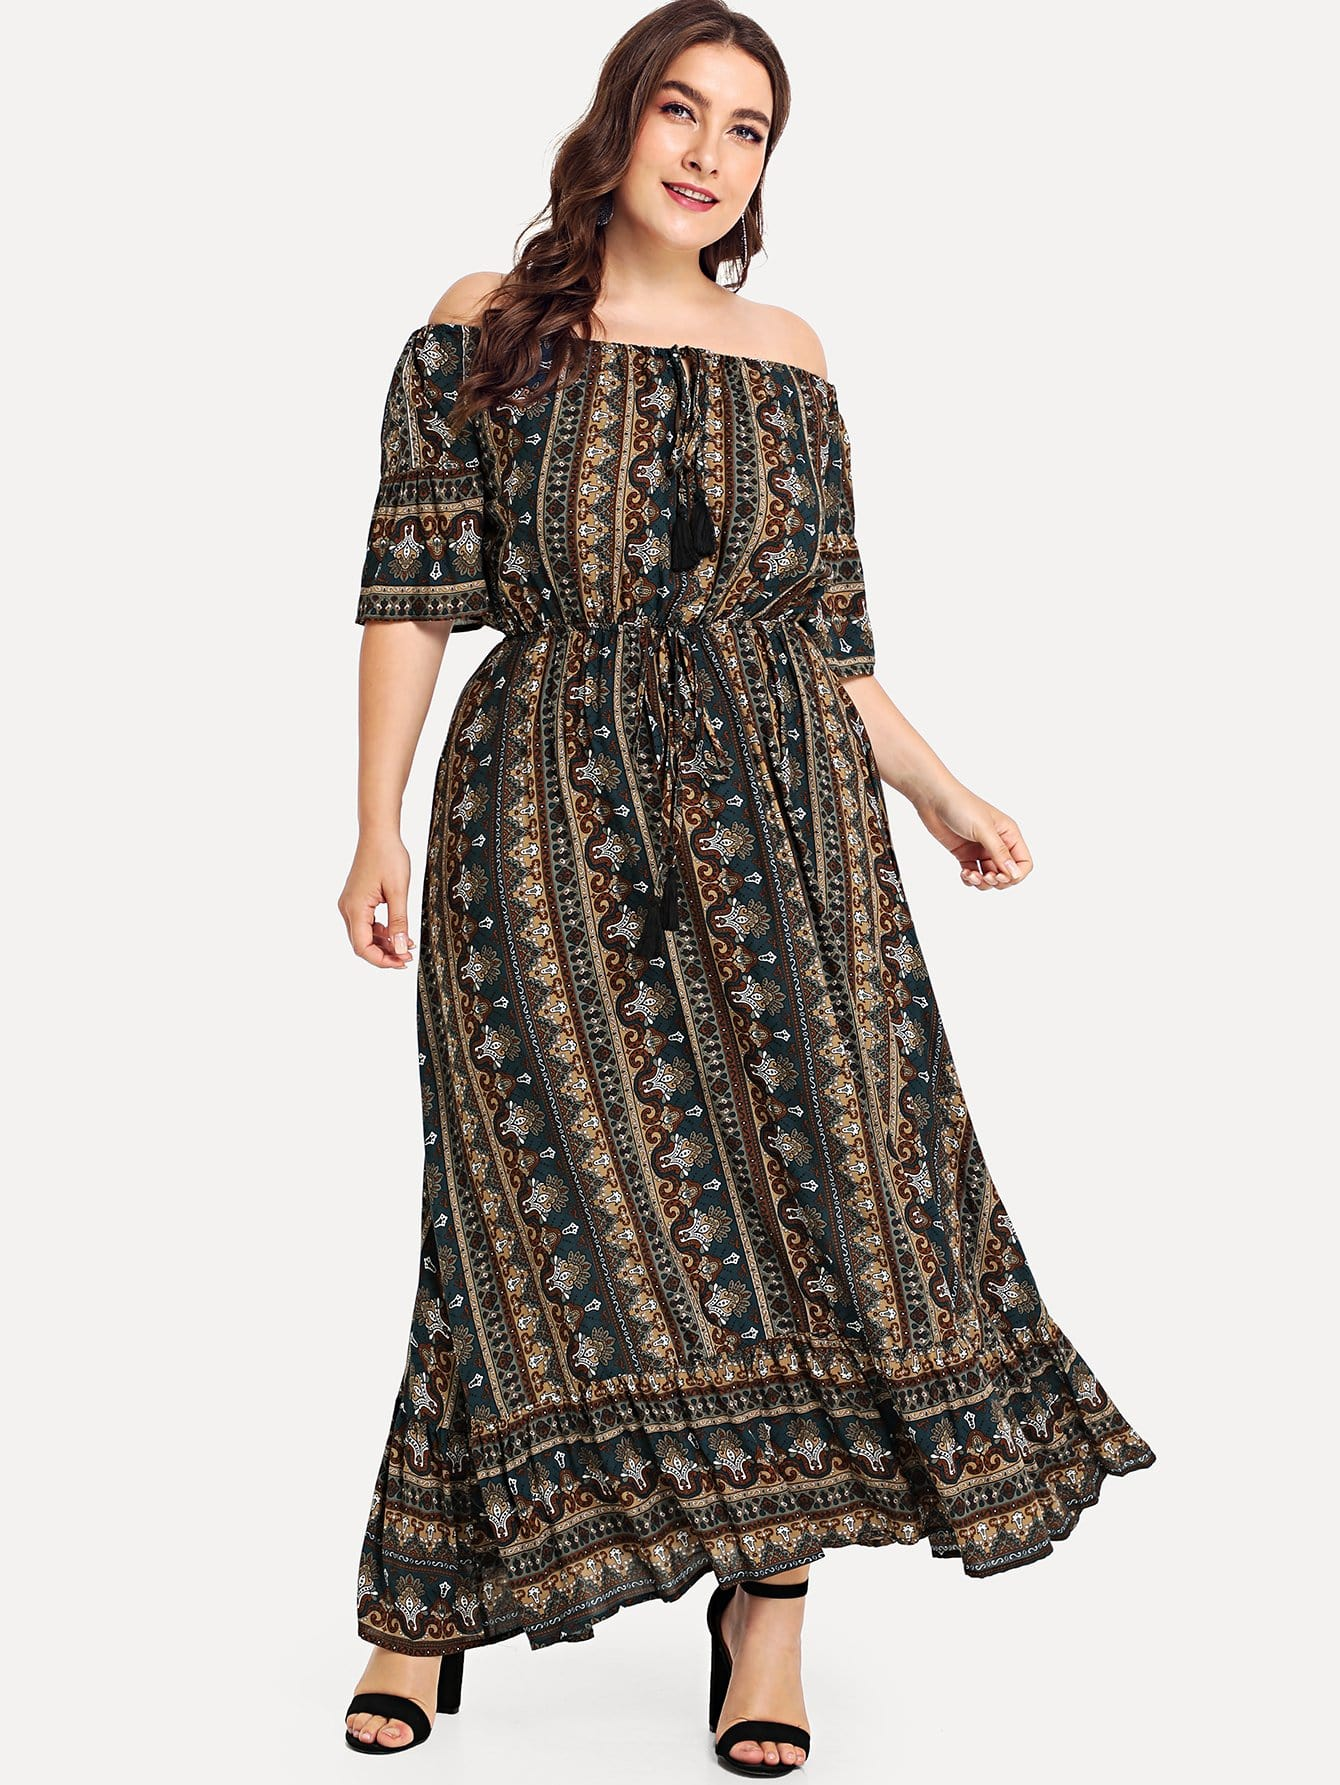 Plus Off Shoulder Tribal Print Dress 3 in 1 sucker filter mixing spoon with cleaning brush